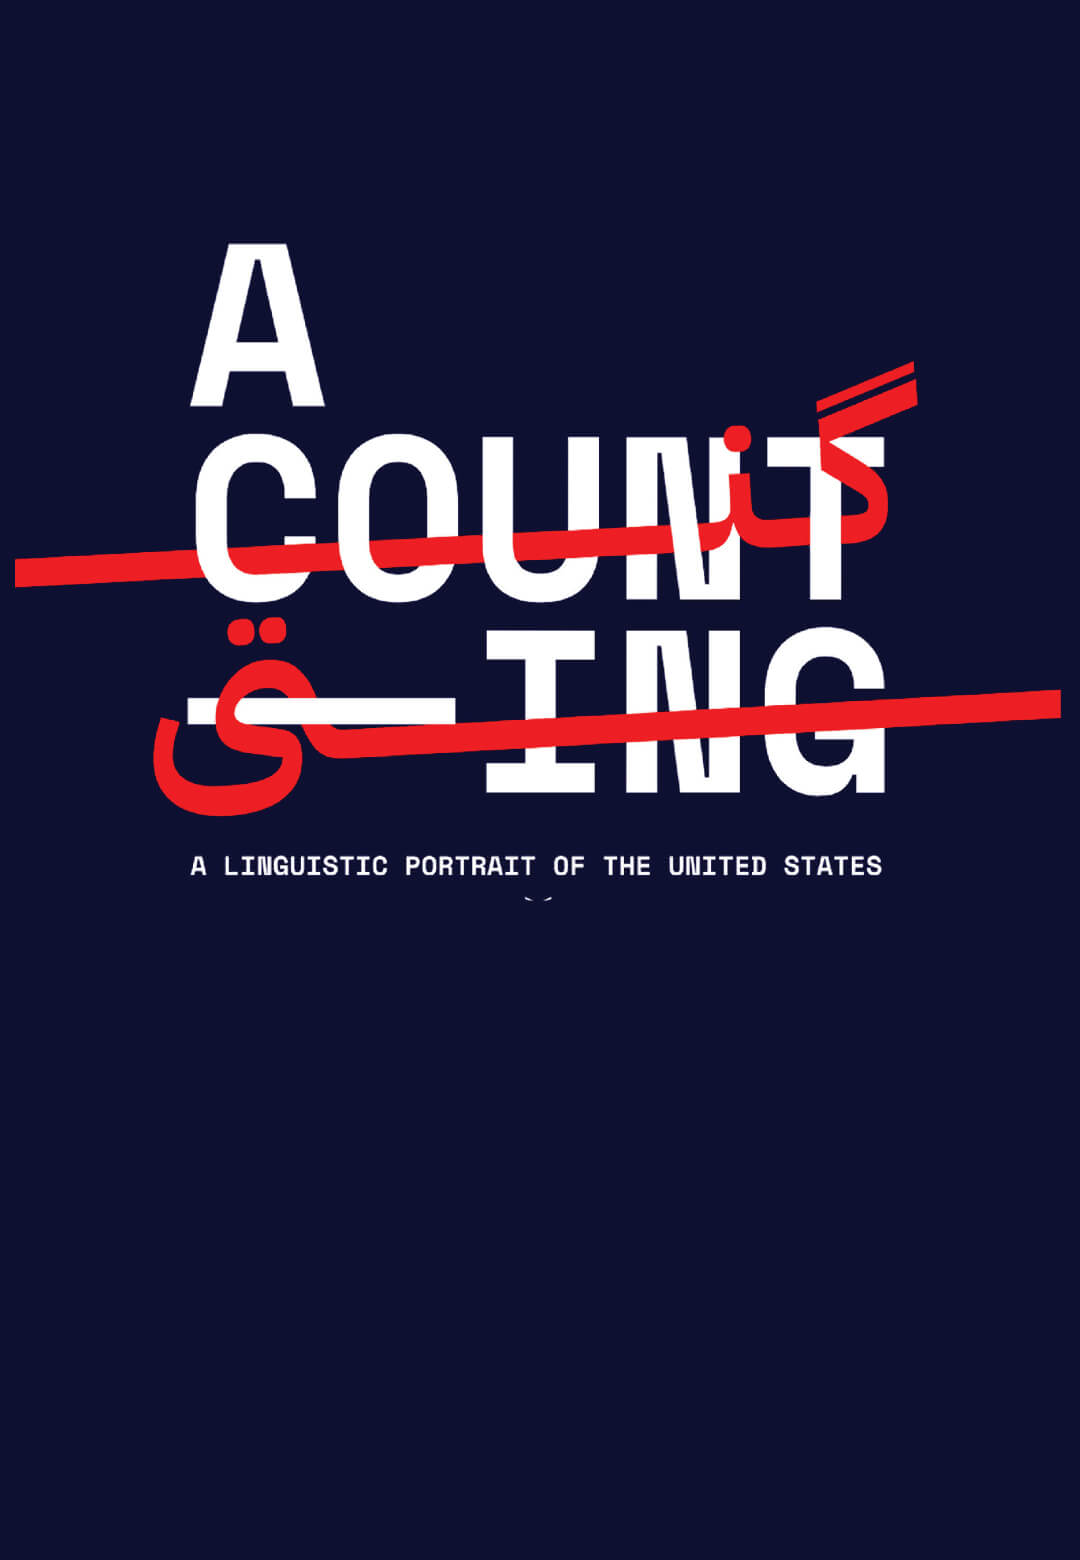 A Counting: A linguistic portrait of the United States | Ekene Ijeoma and Poetic Justice at MIT Media Lab | STIRworld